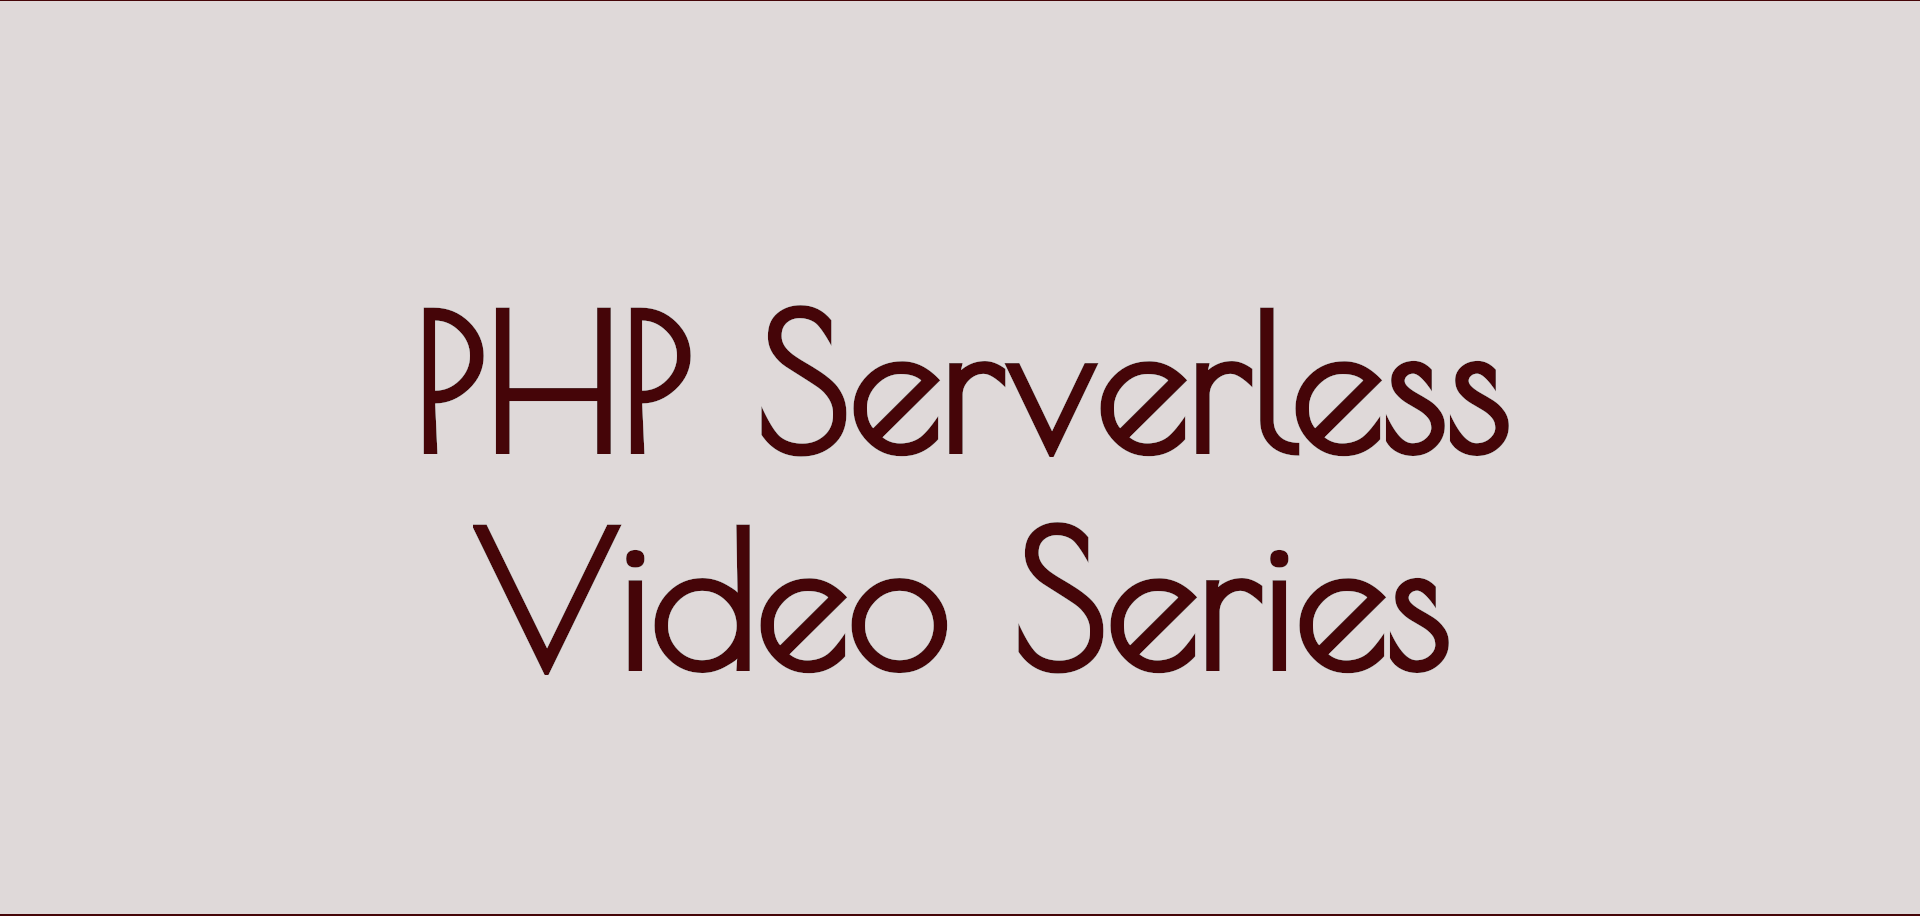 PHP Serverless Video Series